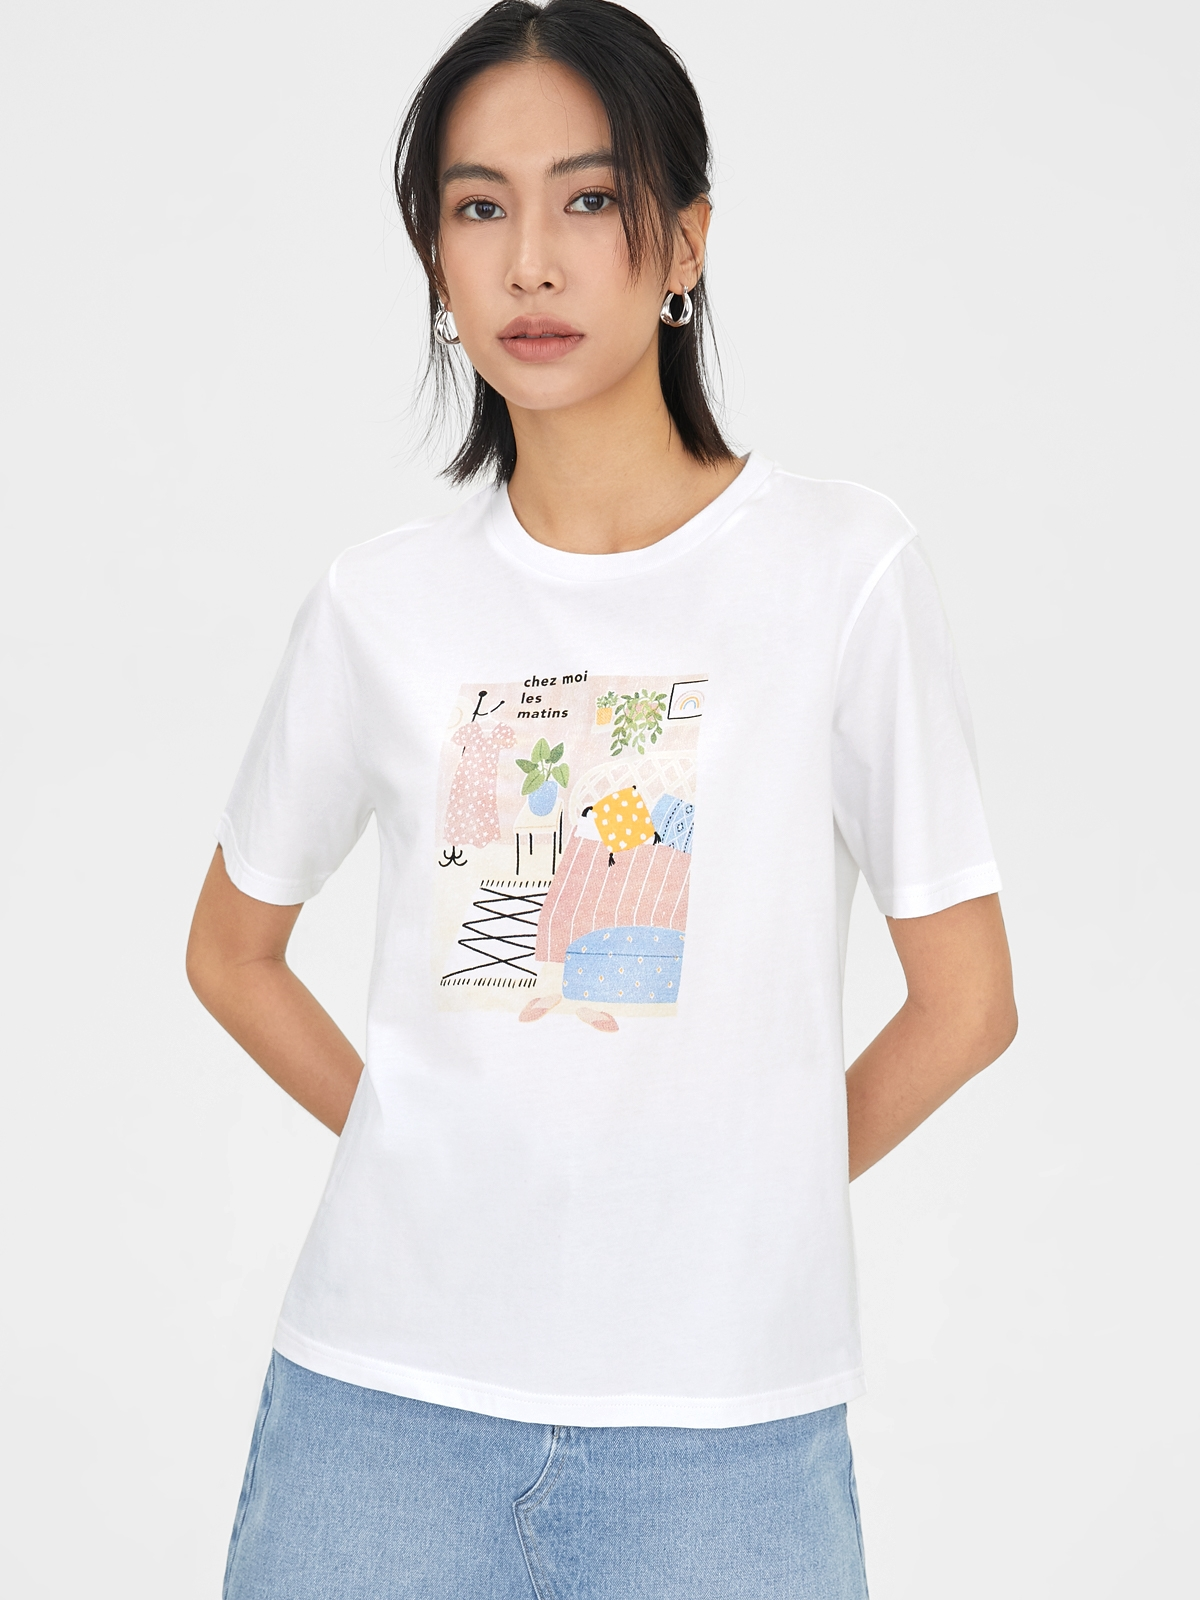 I Relax I Let Go My Life Organic Cotton Graphic Tee Bei